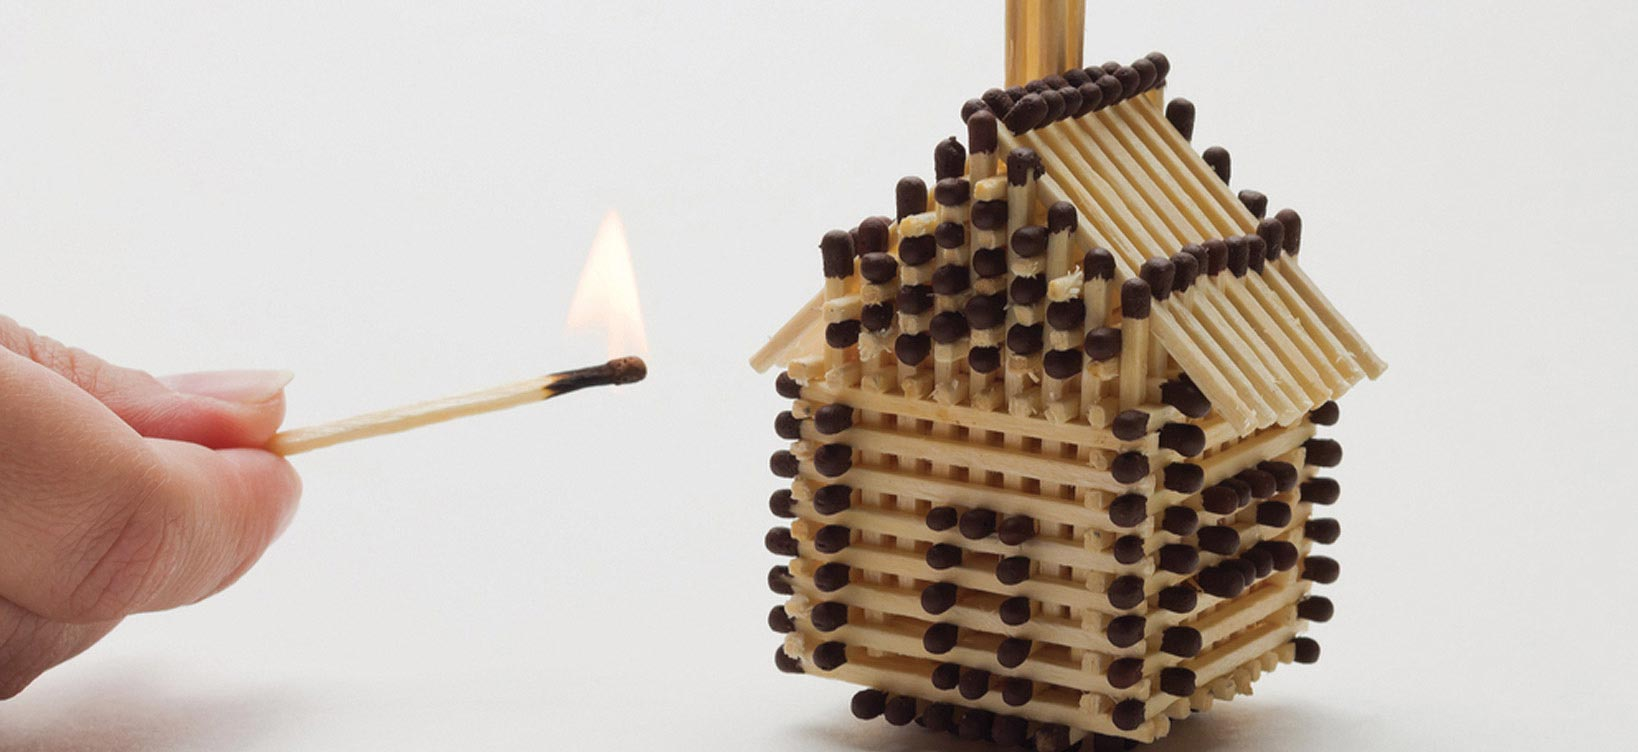 A hand holding a lit match to a little house made from matches